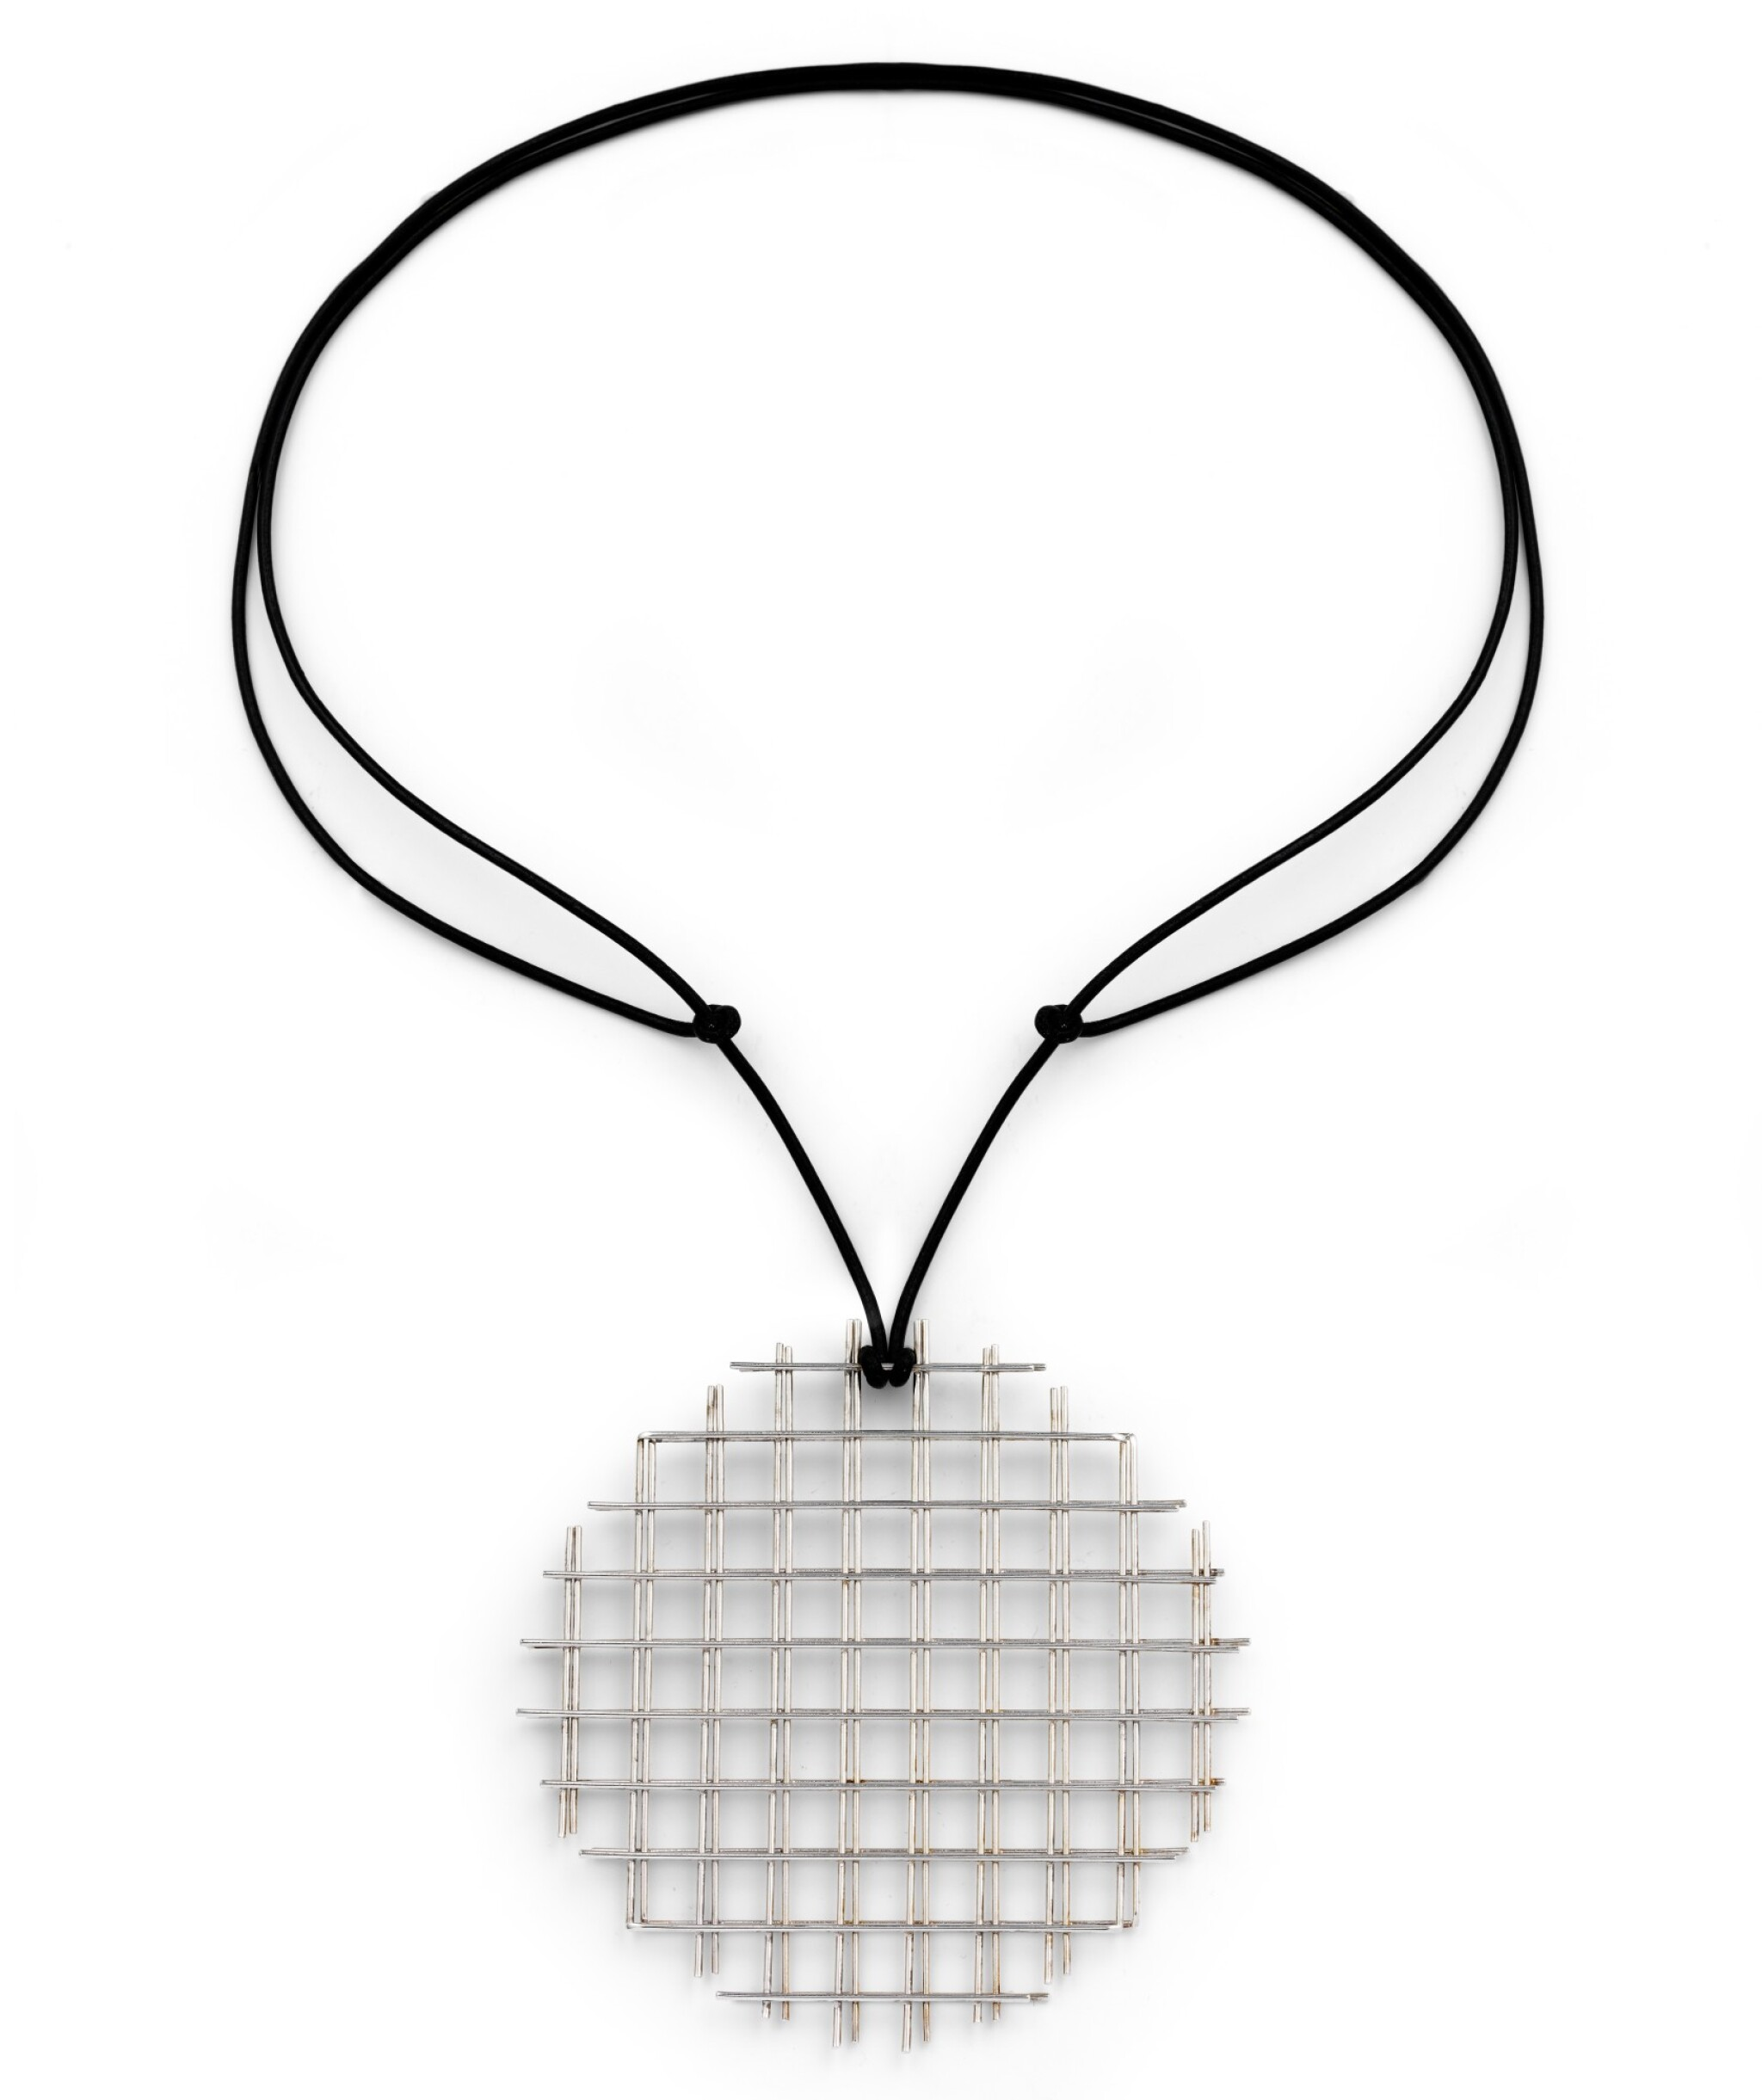 View full screen - View 1 of Lot 30. François Morellet, Necklace [Collier], 2011.